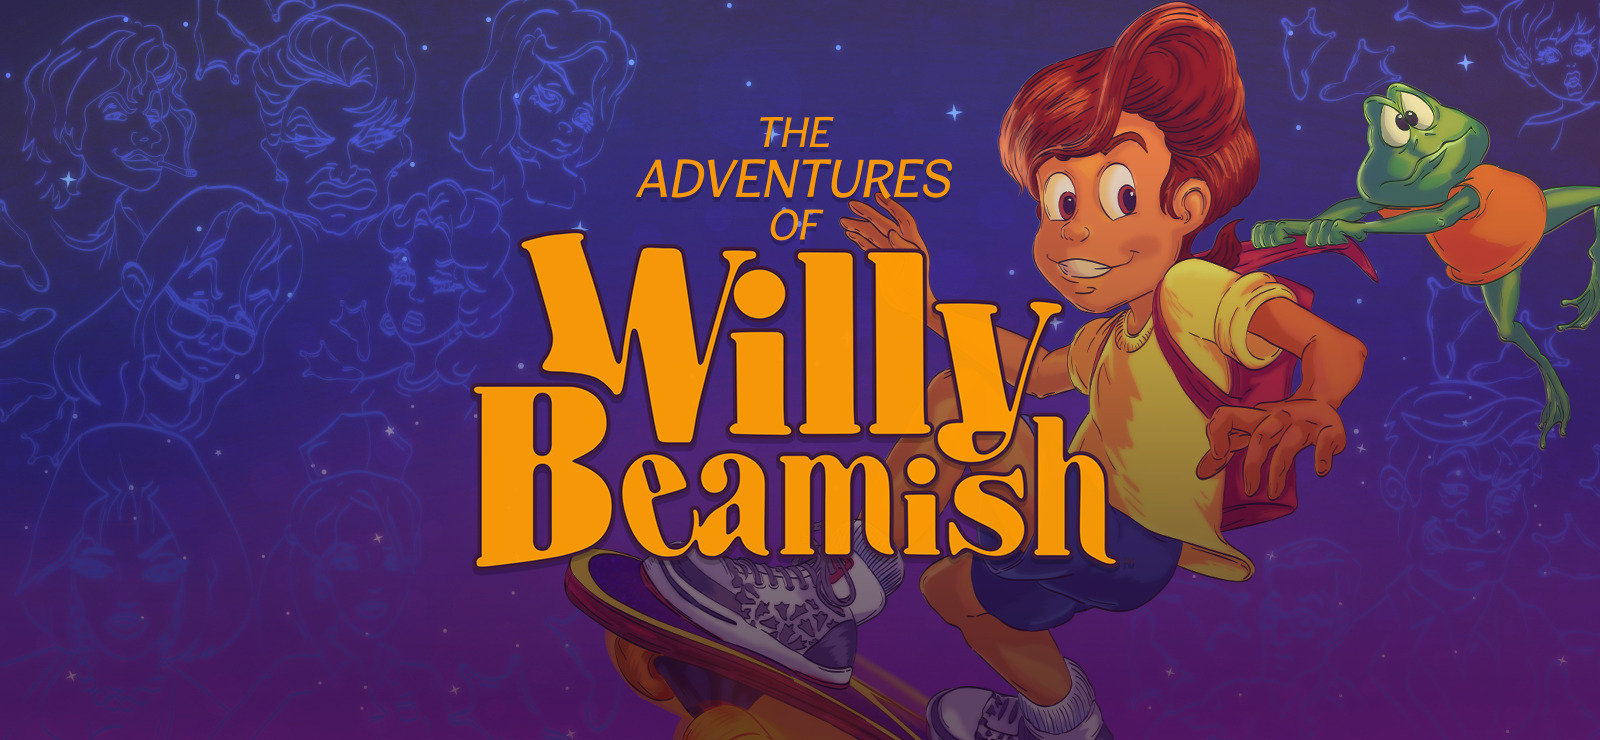 The Adventures of Willy Beamish -25% on GOG.com